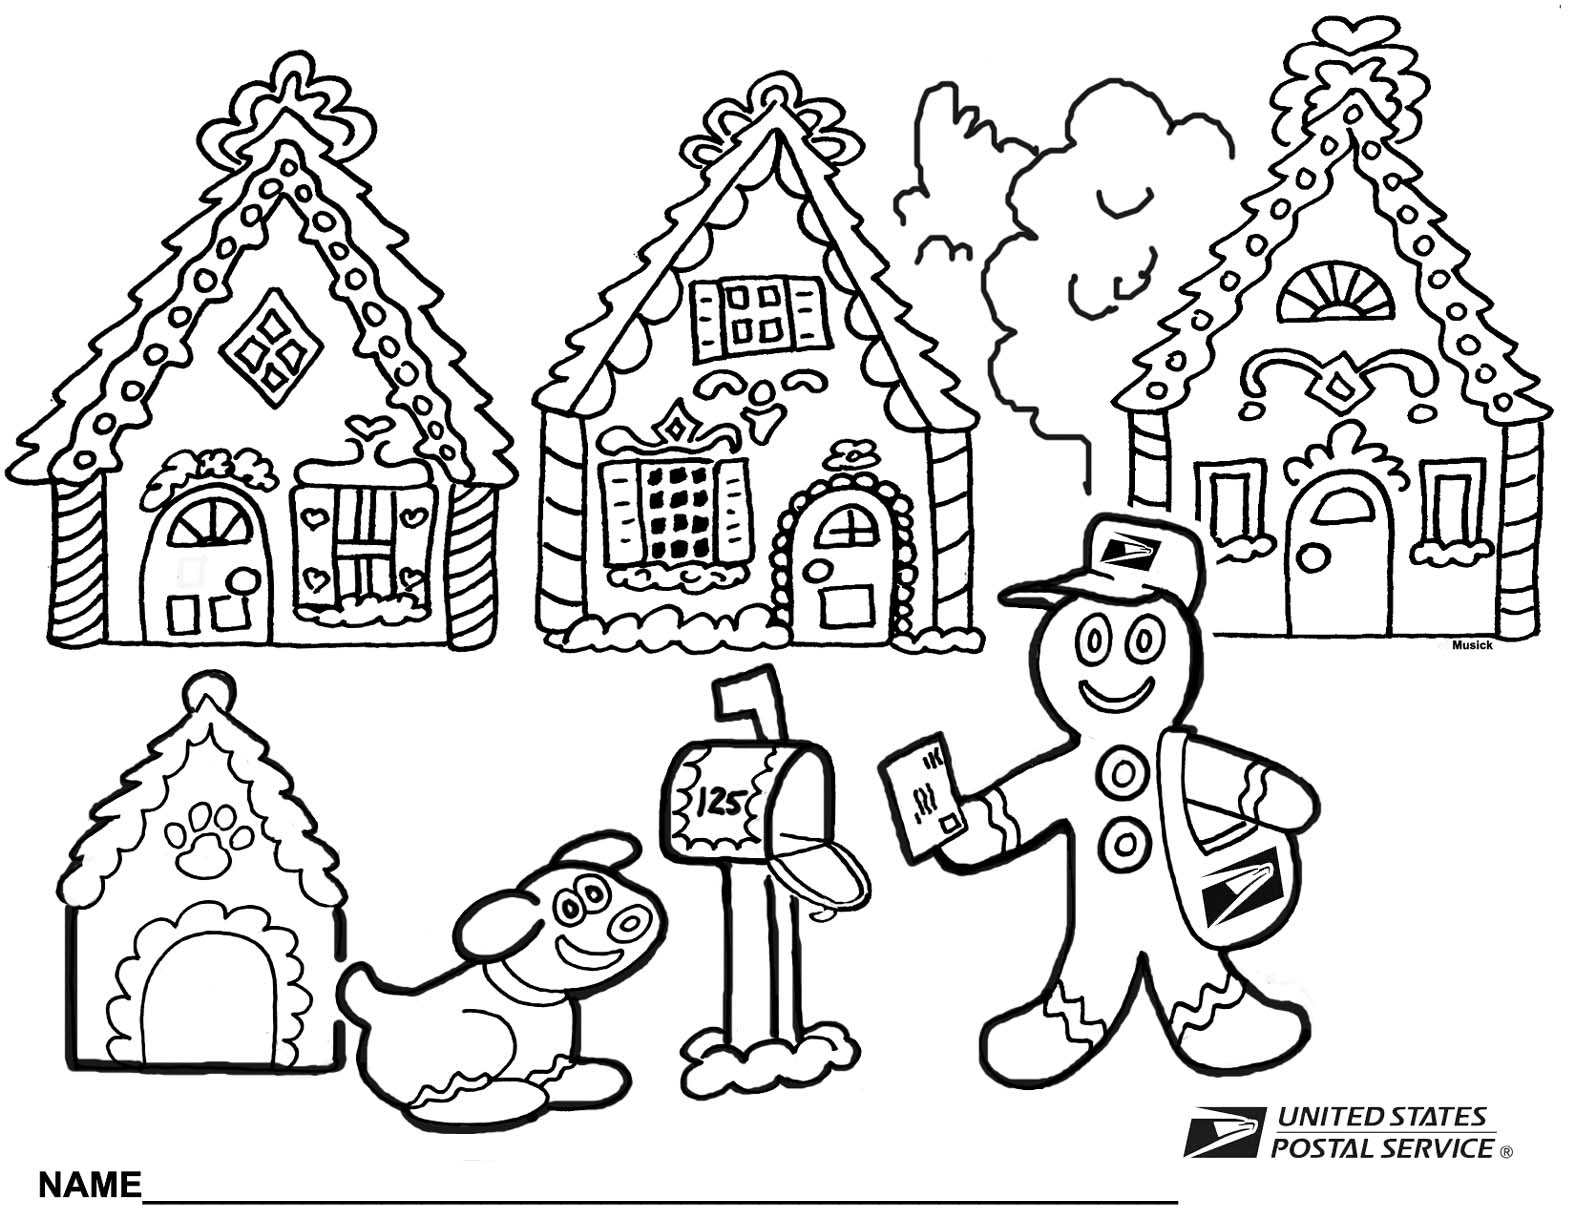 gingerbread house coloring sheet gingerbread house coloring sheet gingerbread coloring sheet house